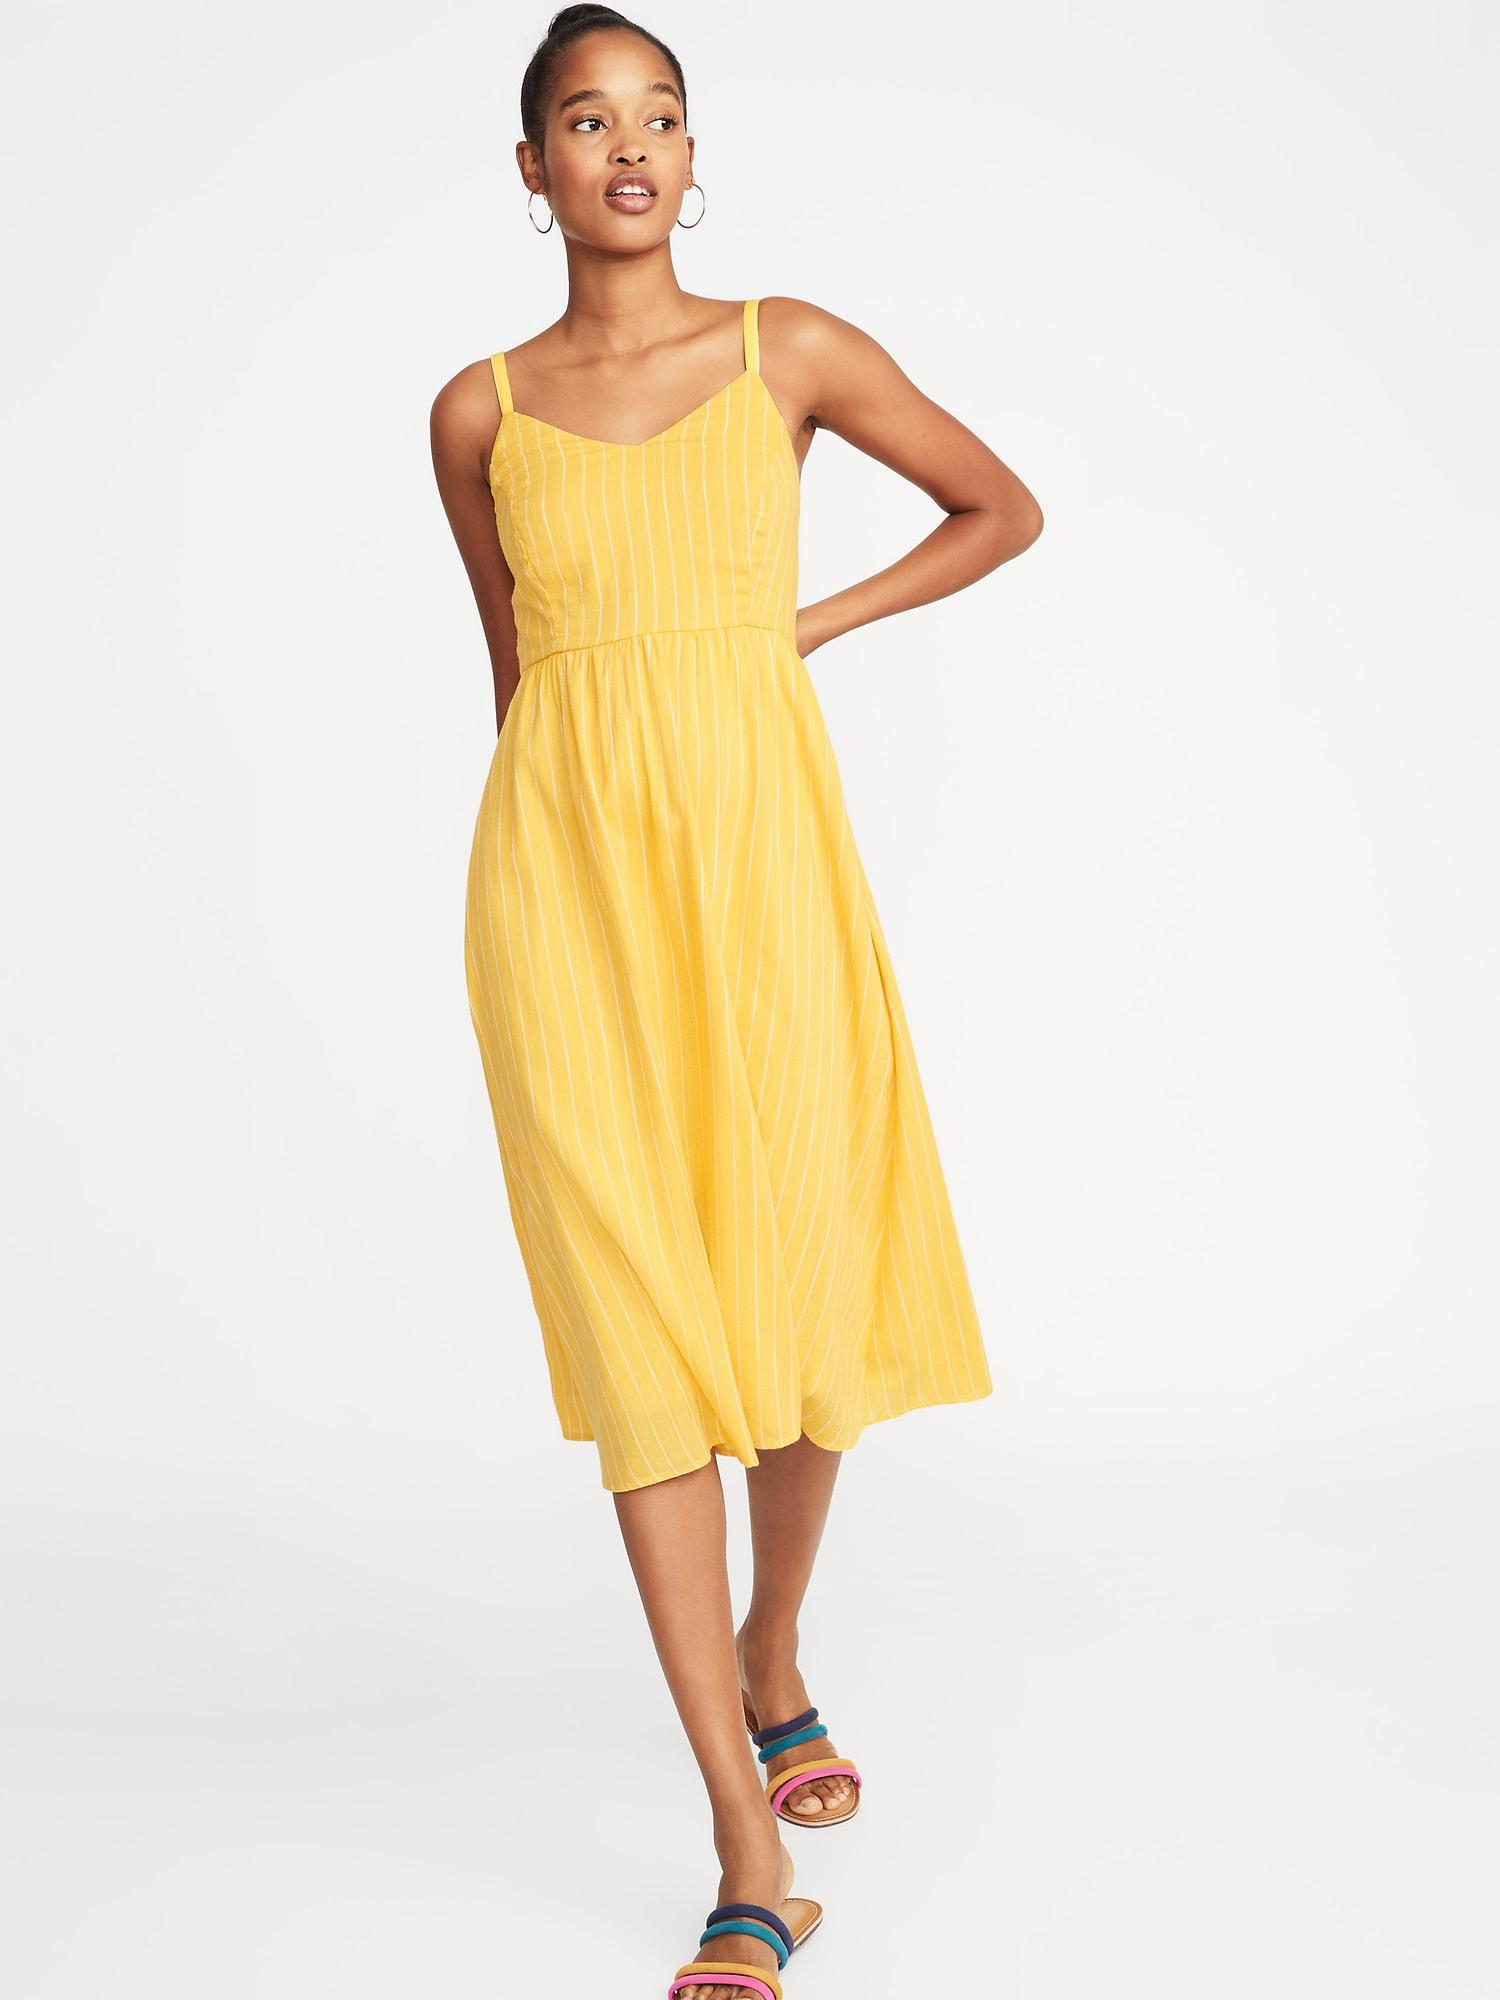 359ad6322542 Old Navy Fit & Flare Cami Midi Dress in Yellow - Lyst